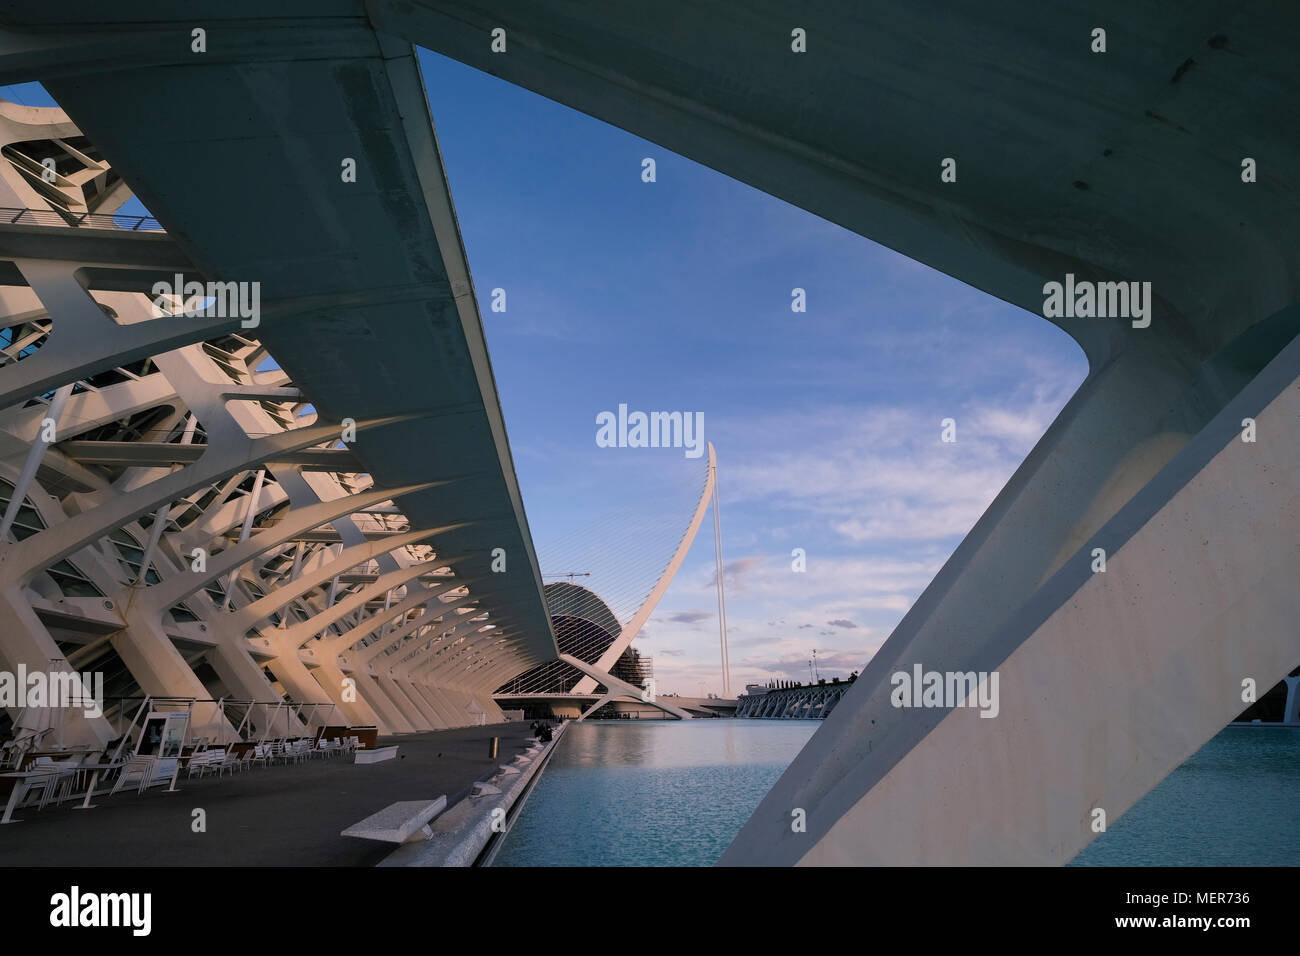 L'Umbracle building, with El Pont de l'Assut de l'Or in the background, City of Arts and Sciences, Valencia, Spain Stock Photo